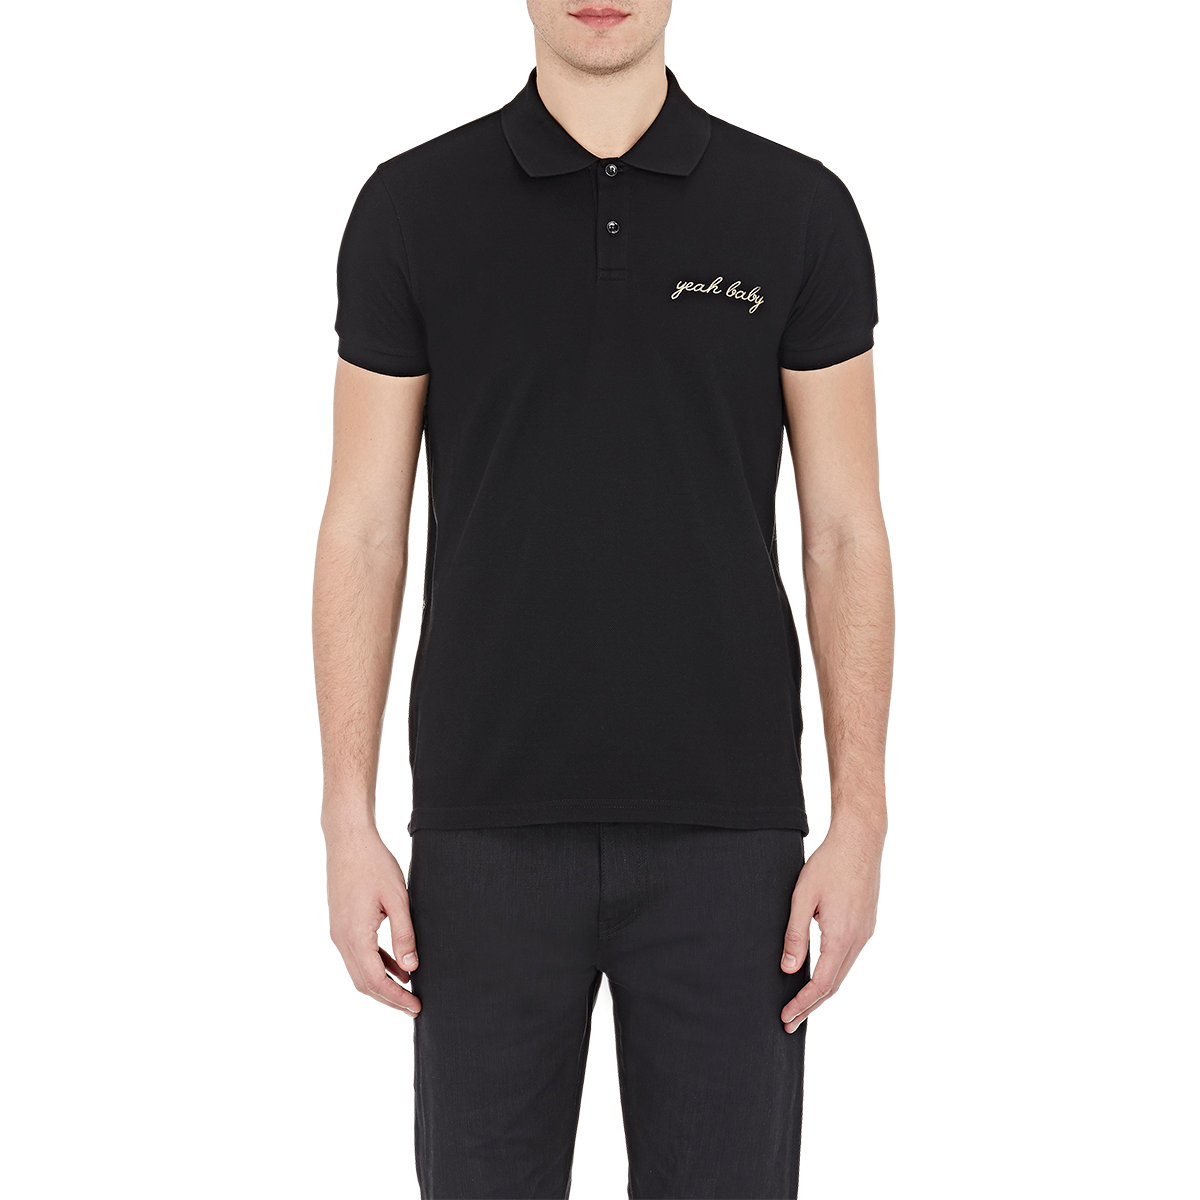 lyst saint laurent men s yeah baby polo shirt in black for men